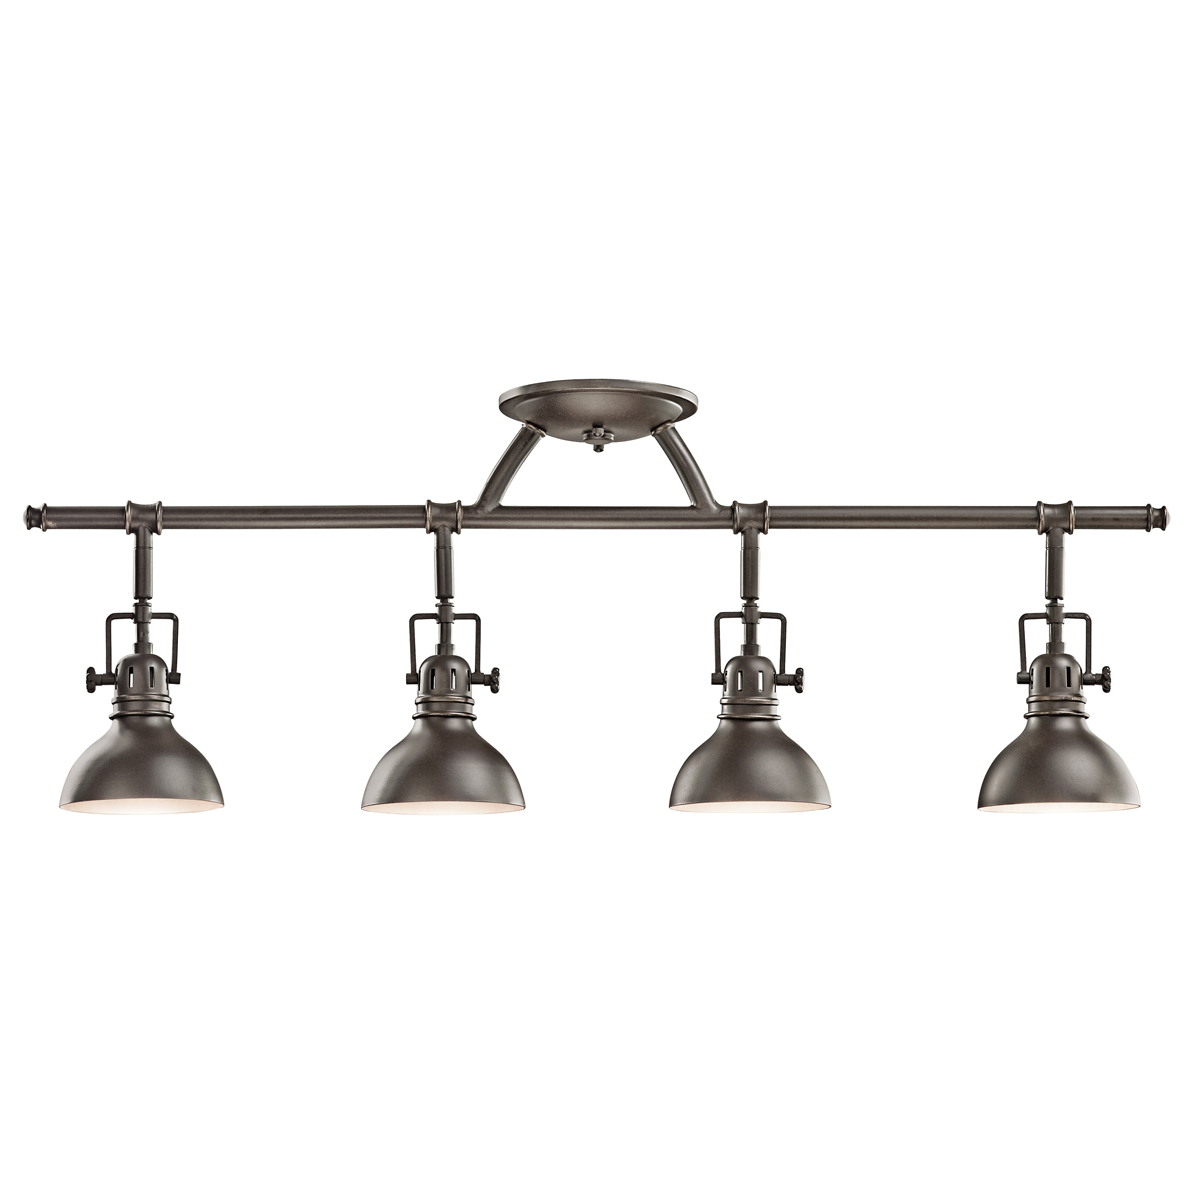 Kichler 7704OZ Fixed Rail 4 Light Halogen With Finish: Olde Bronze